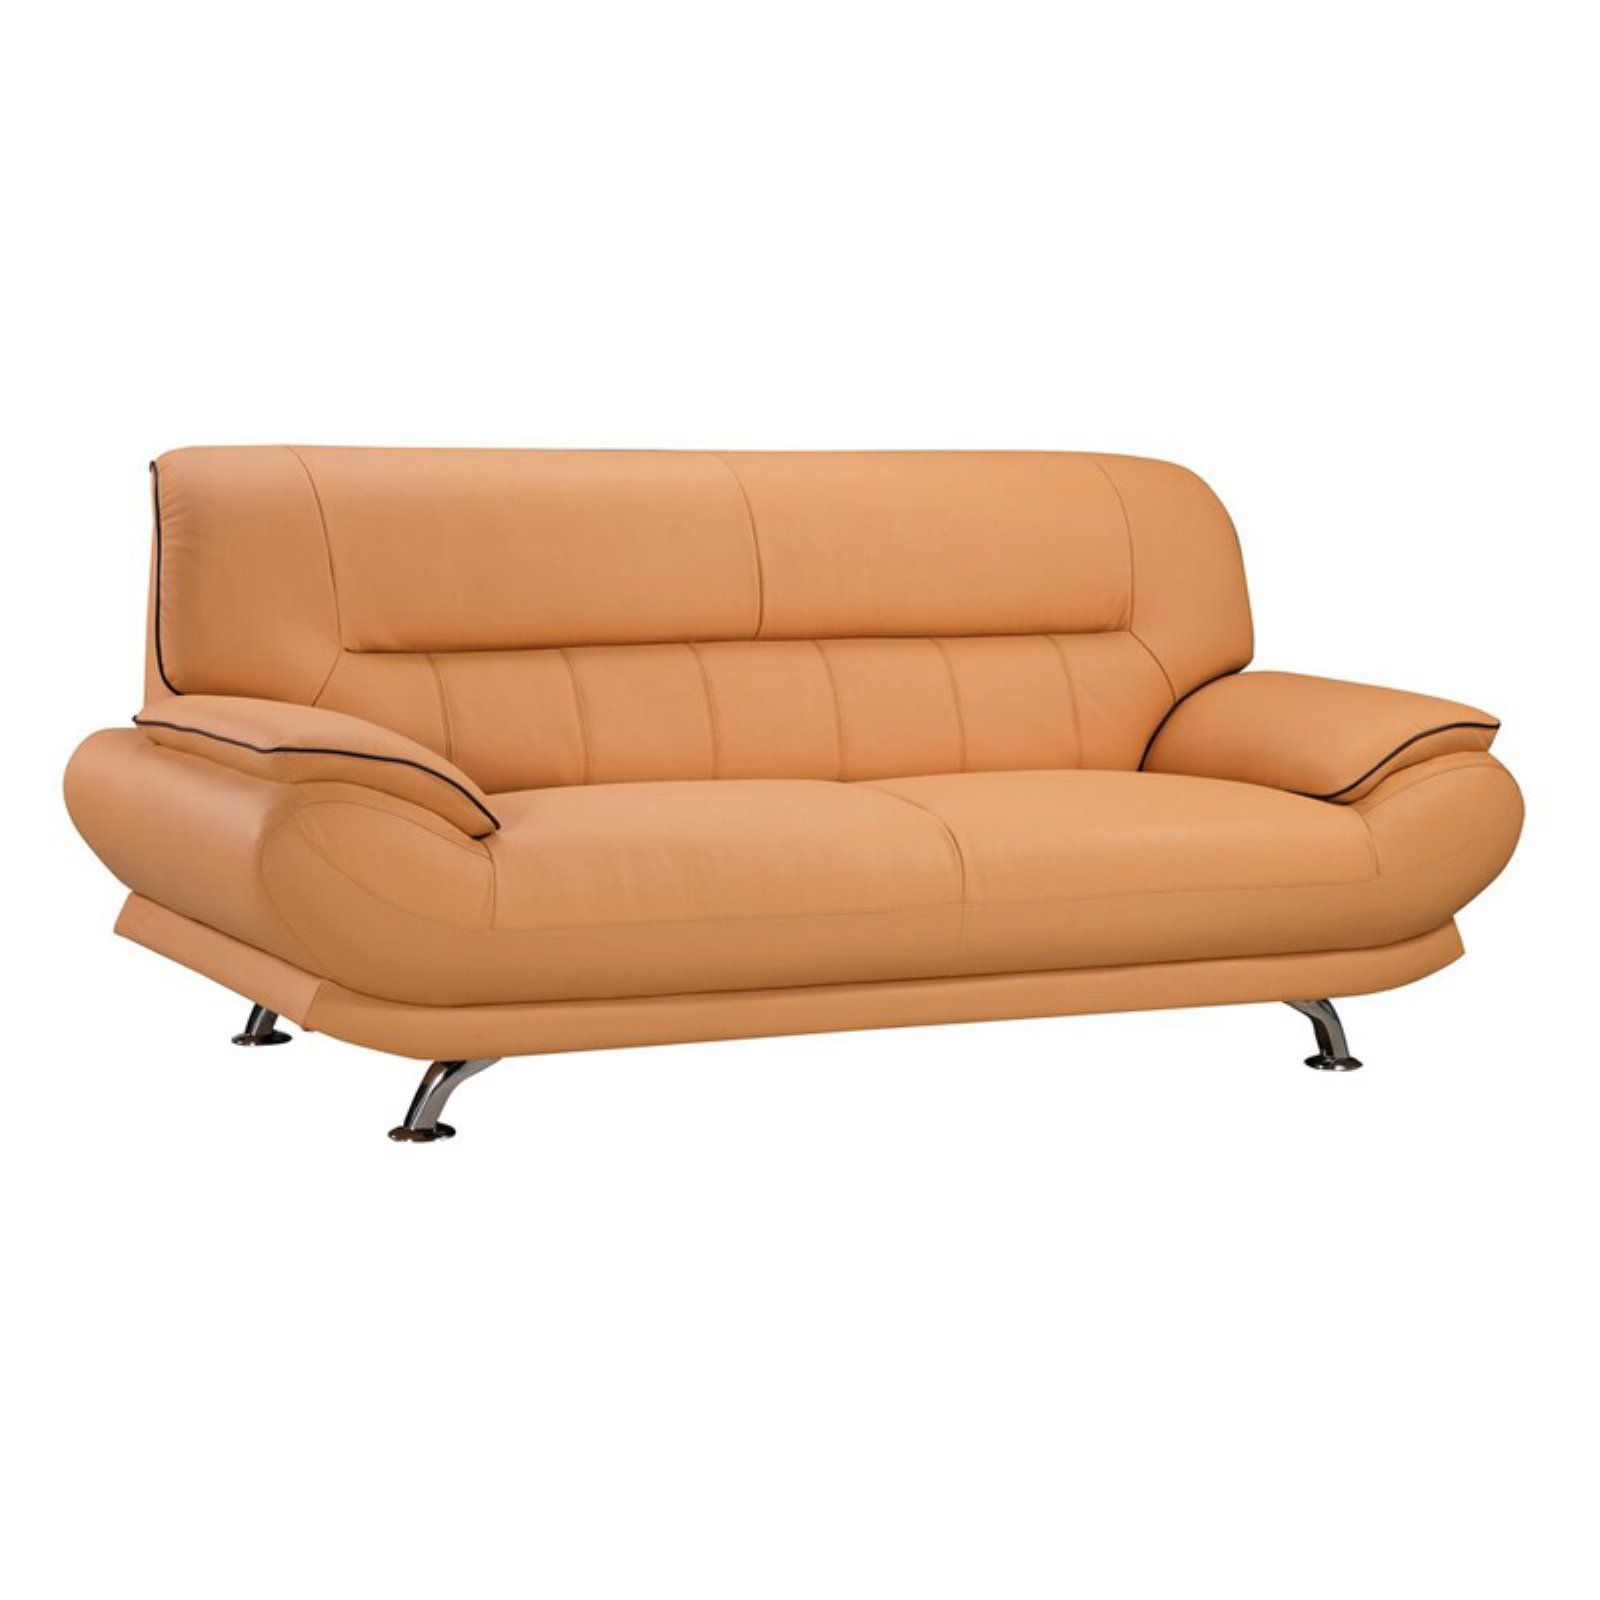 American Eagle Furniture Georgiana Leather Beige: American Eagle Furniture Arcadia Sofa Yellow In 2019